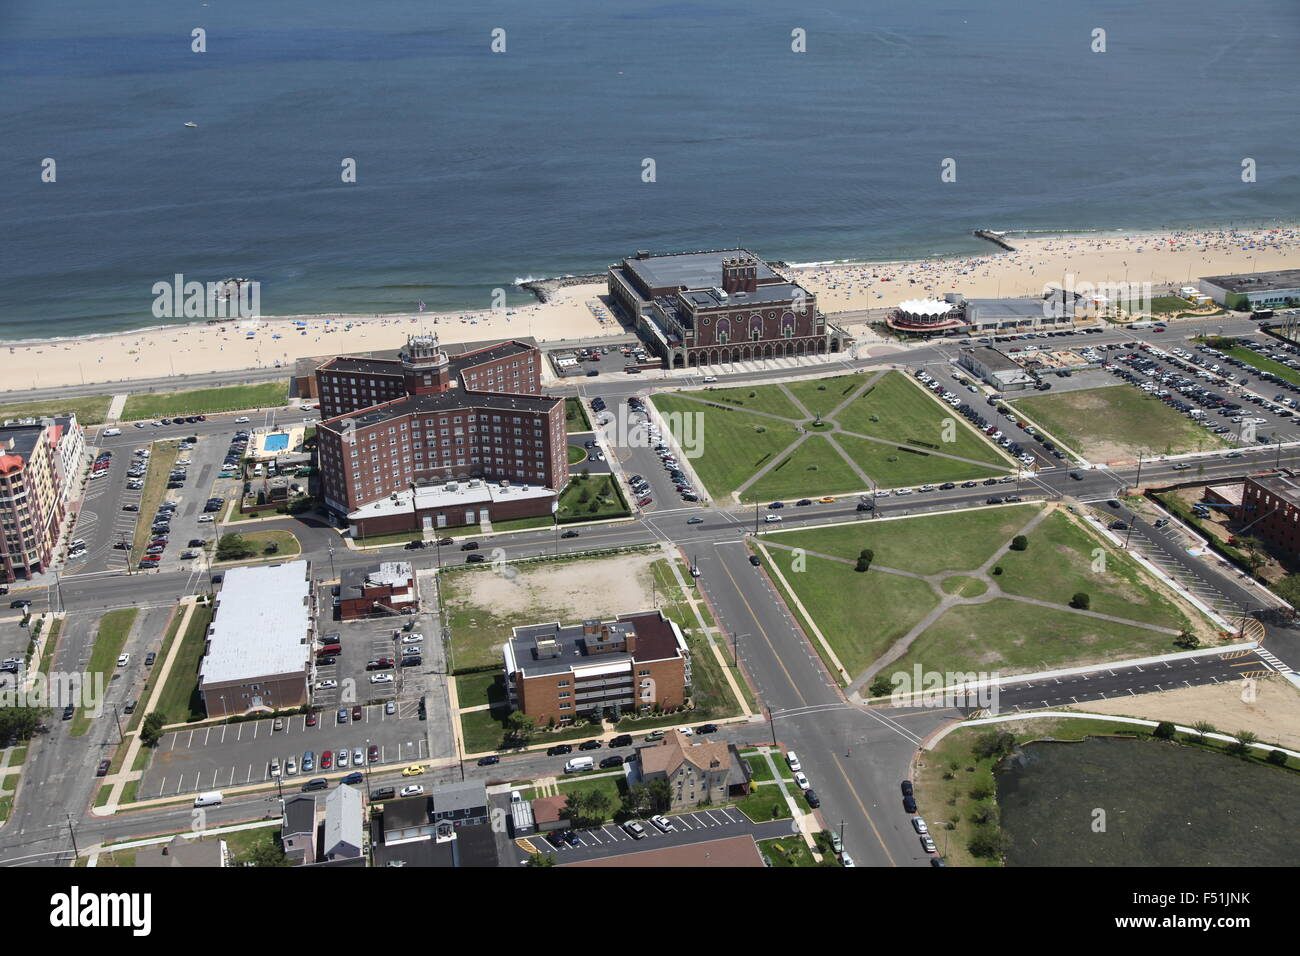 Aerial View Of Convention Hall Asbury Park New Jersey